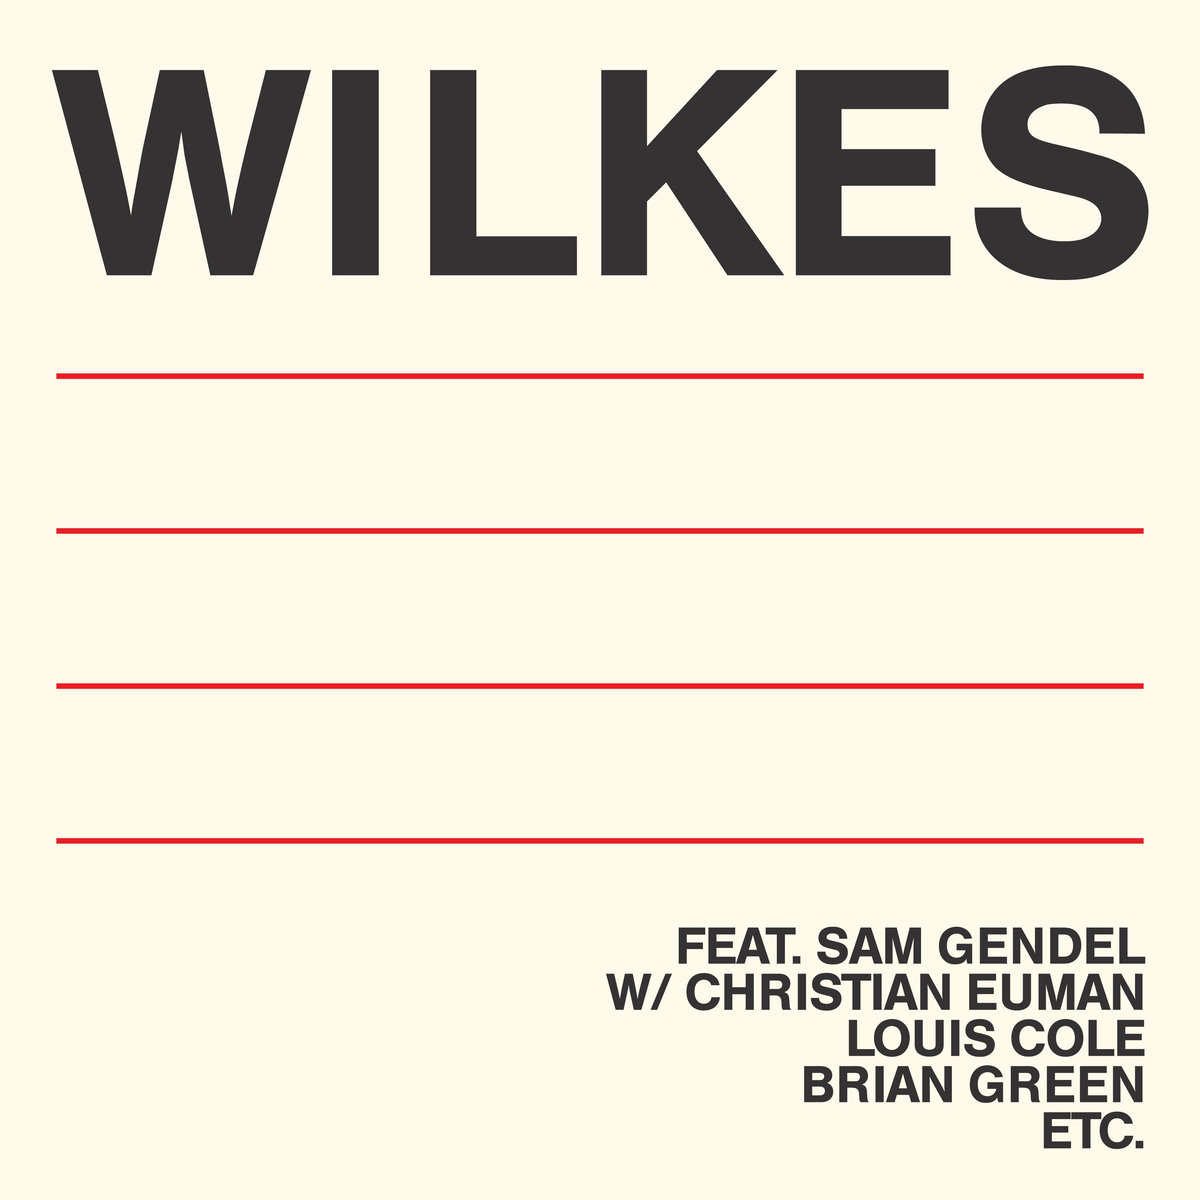 """Sam Wilkes, Wilkes (Leaving Records, 2018) - """"This is Sam Wilkes' debut solo record and it's simply stunning. Laid-back jazz dabbling in ambient, beats, and peppered with several awesome frenetic solos throughout. Favourite tracks are 'Today' and 'Hug,' the latter featuring some pretty astounding off-the-rails saxophone and drums by collaborators Sam Grendel and Christian Euman.""""- Victoria King, Marketing and Communications Manager"""